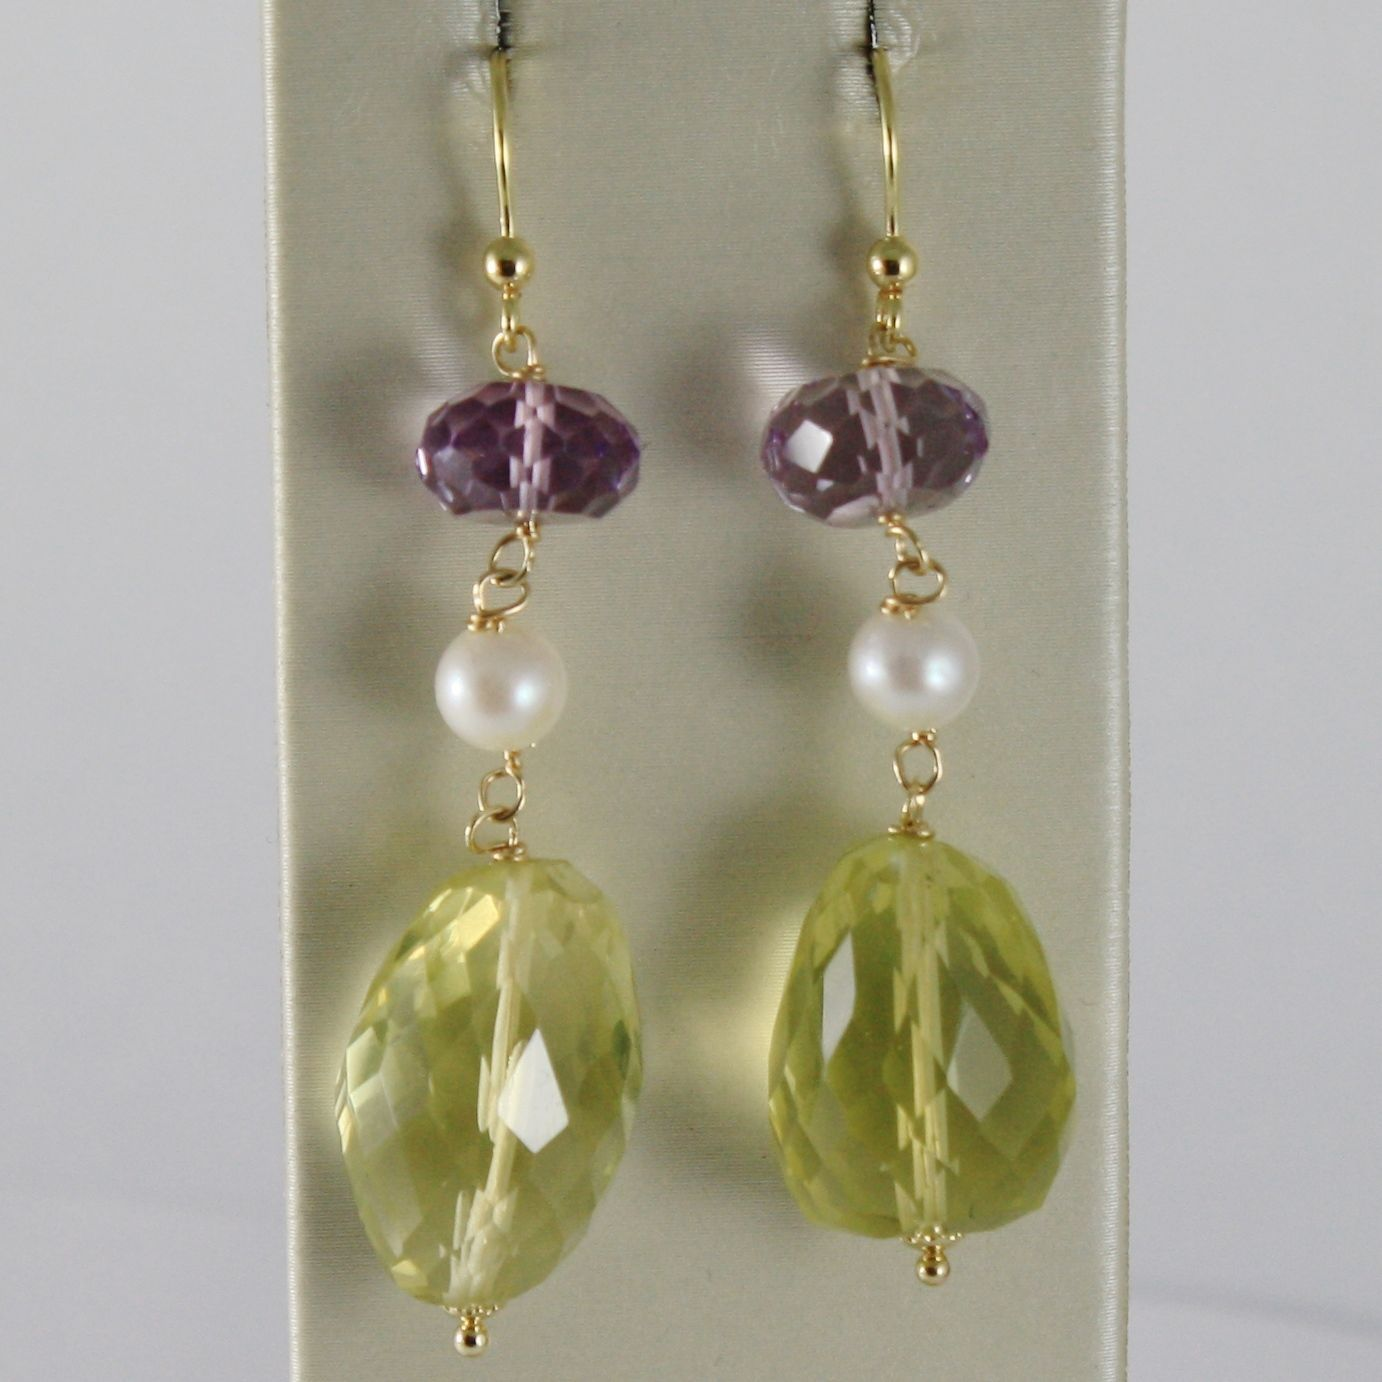 SOLID 18K YELLOW GOLD PENDANT EARRINGS WITH CUSHION AMETHYST LEMON QUARTZ PEARLS